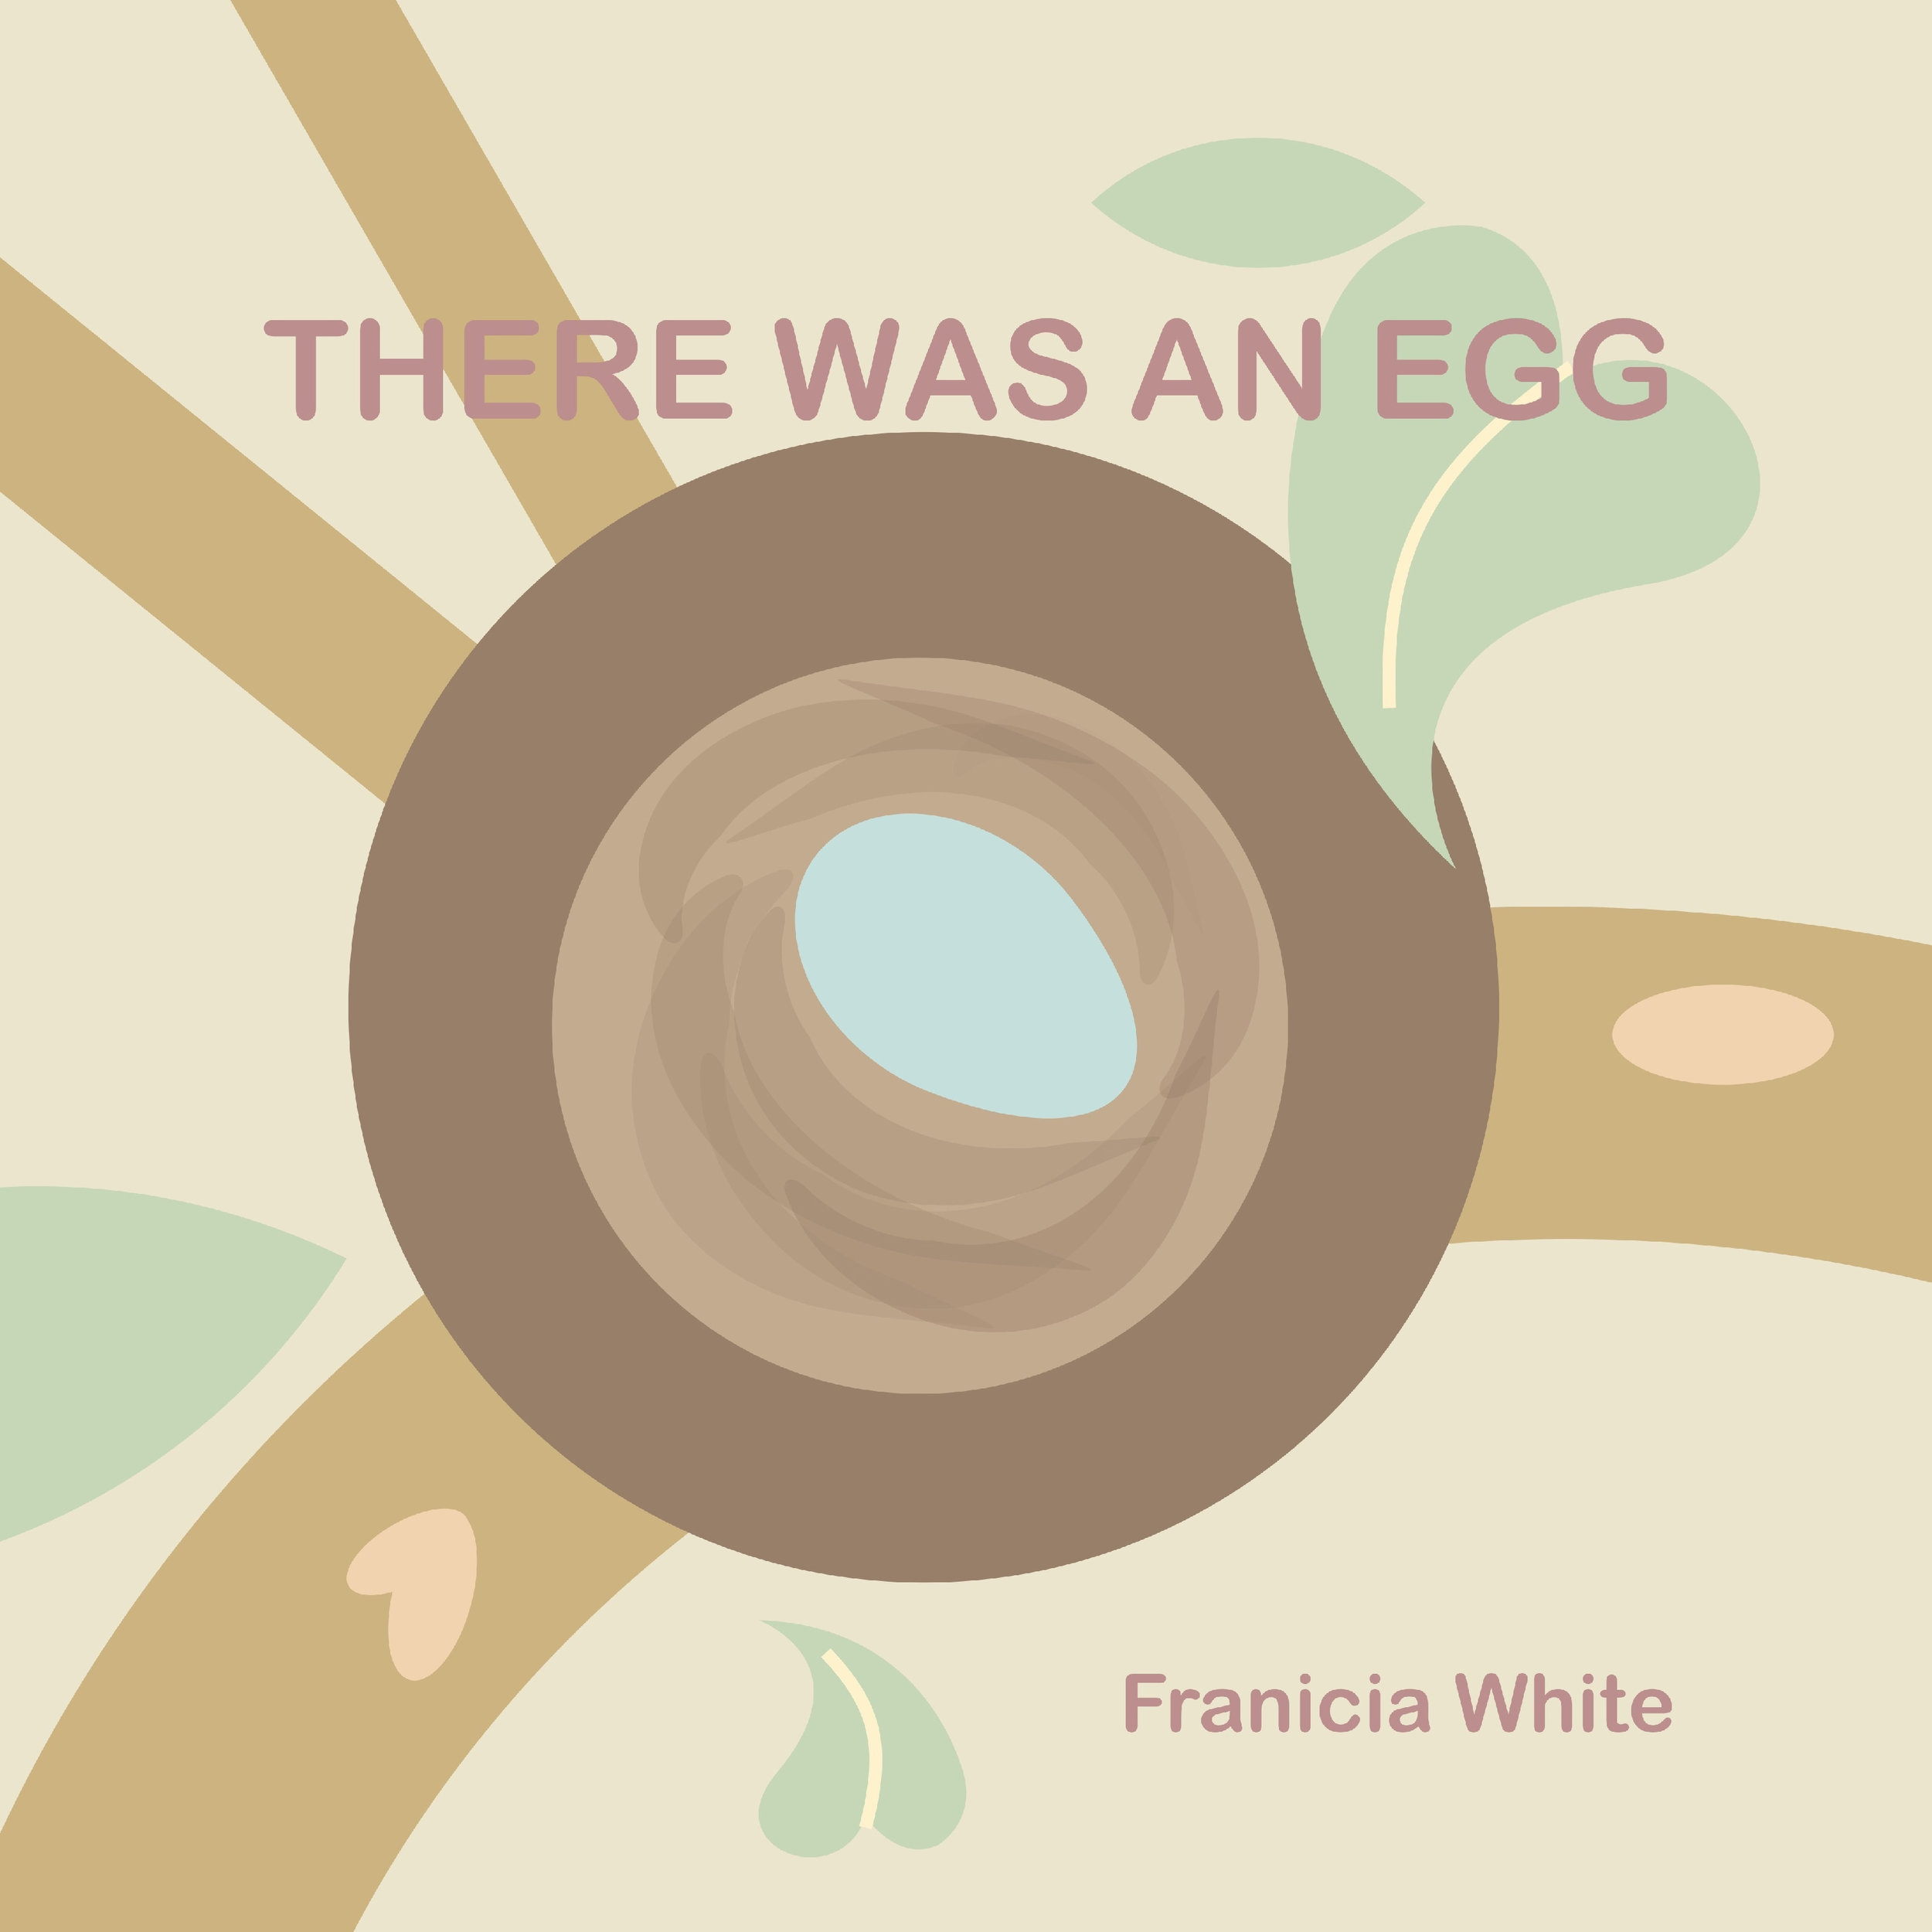 There Was an Egg by Franicia White